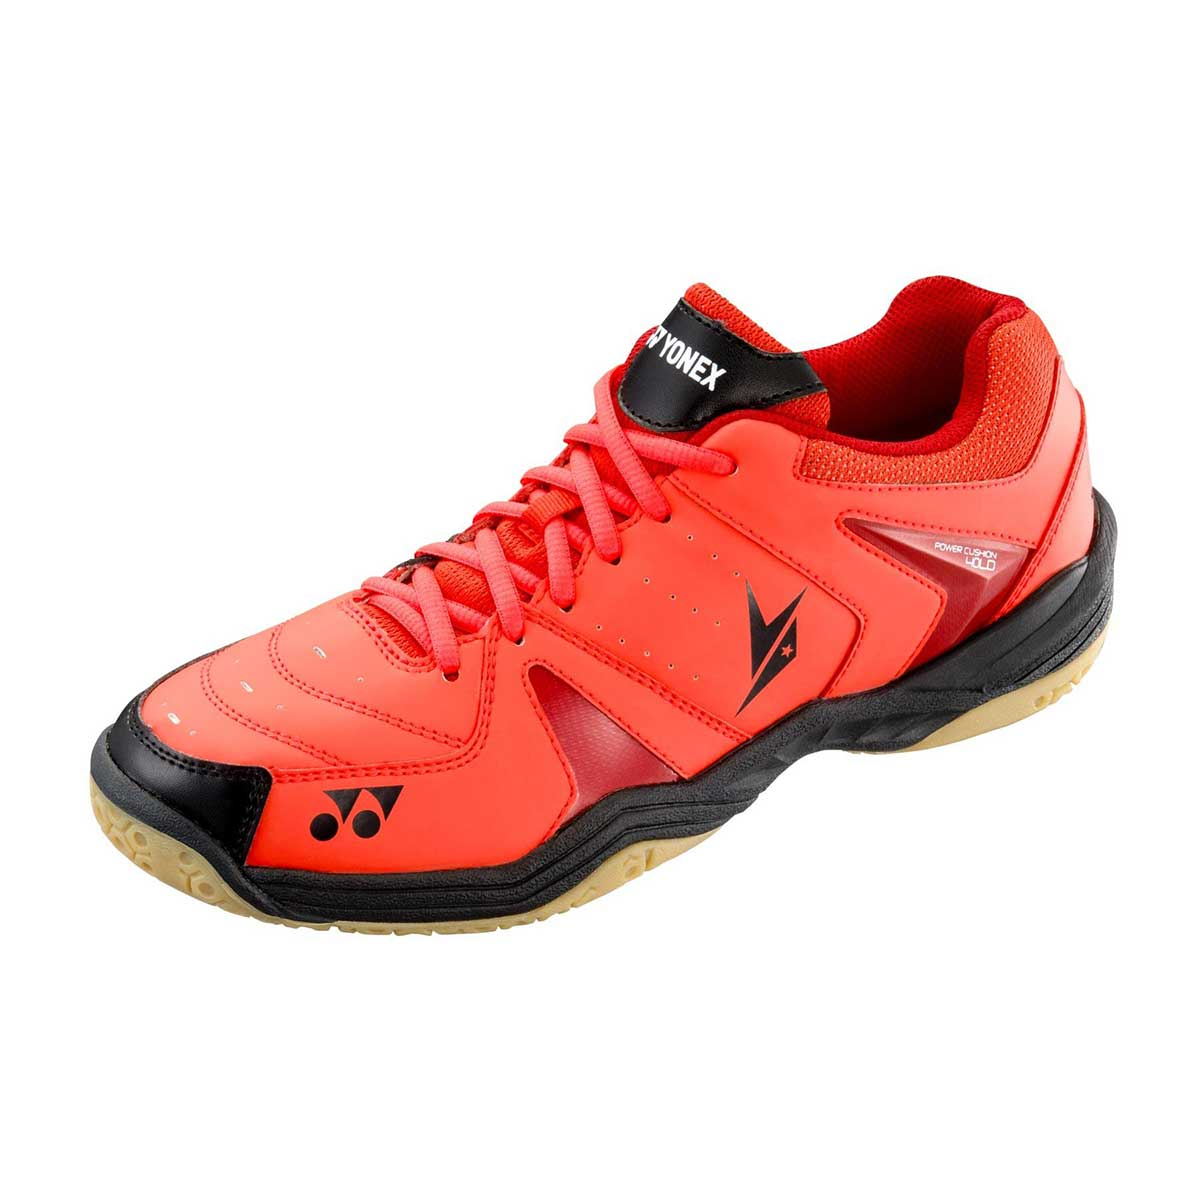 Badminton Shoes Nike Philippines